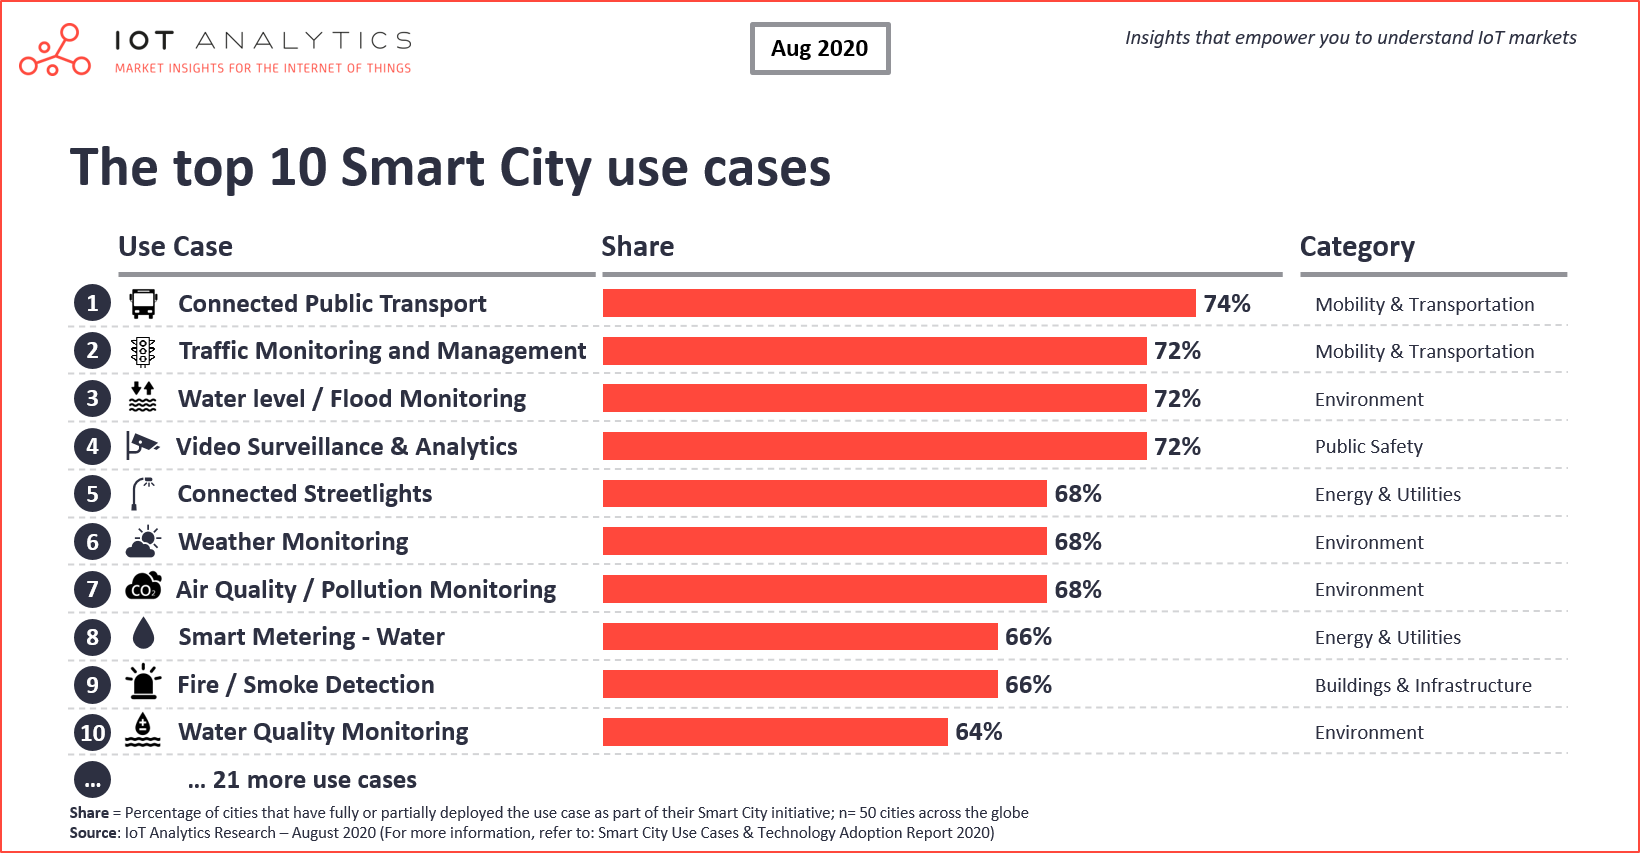 Top 10 Smart City Use Cases